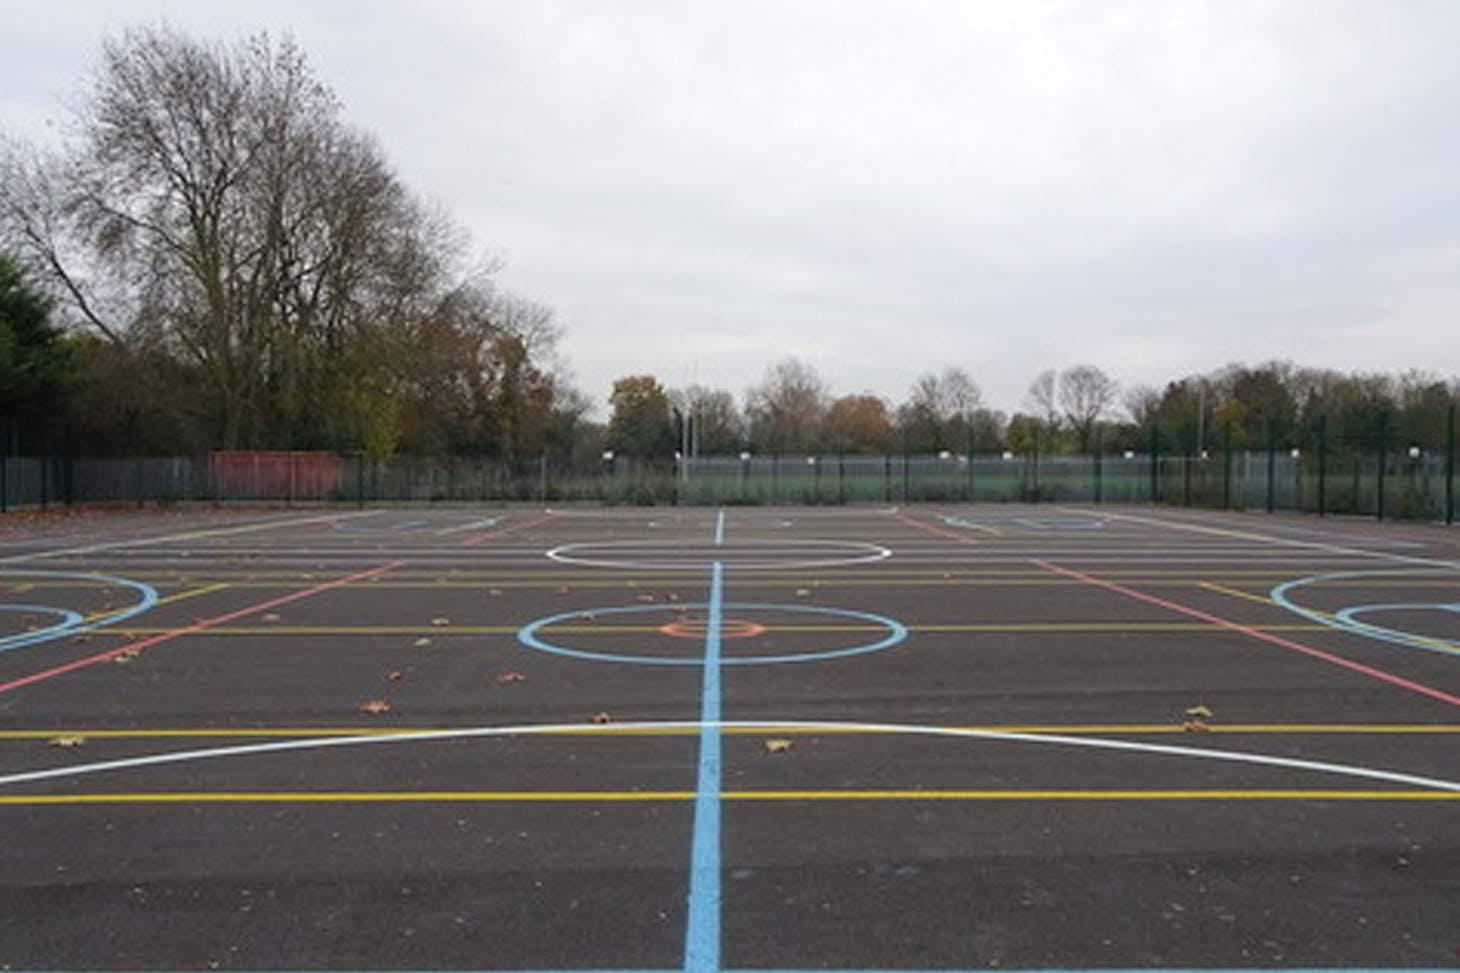 Orchardside School Outdoor | Hard (macadam) basketball court